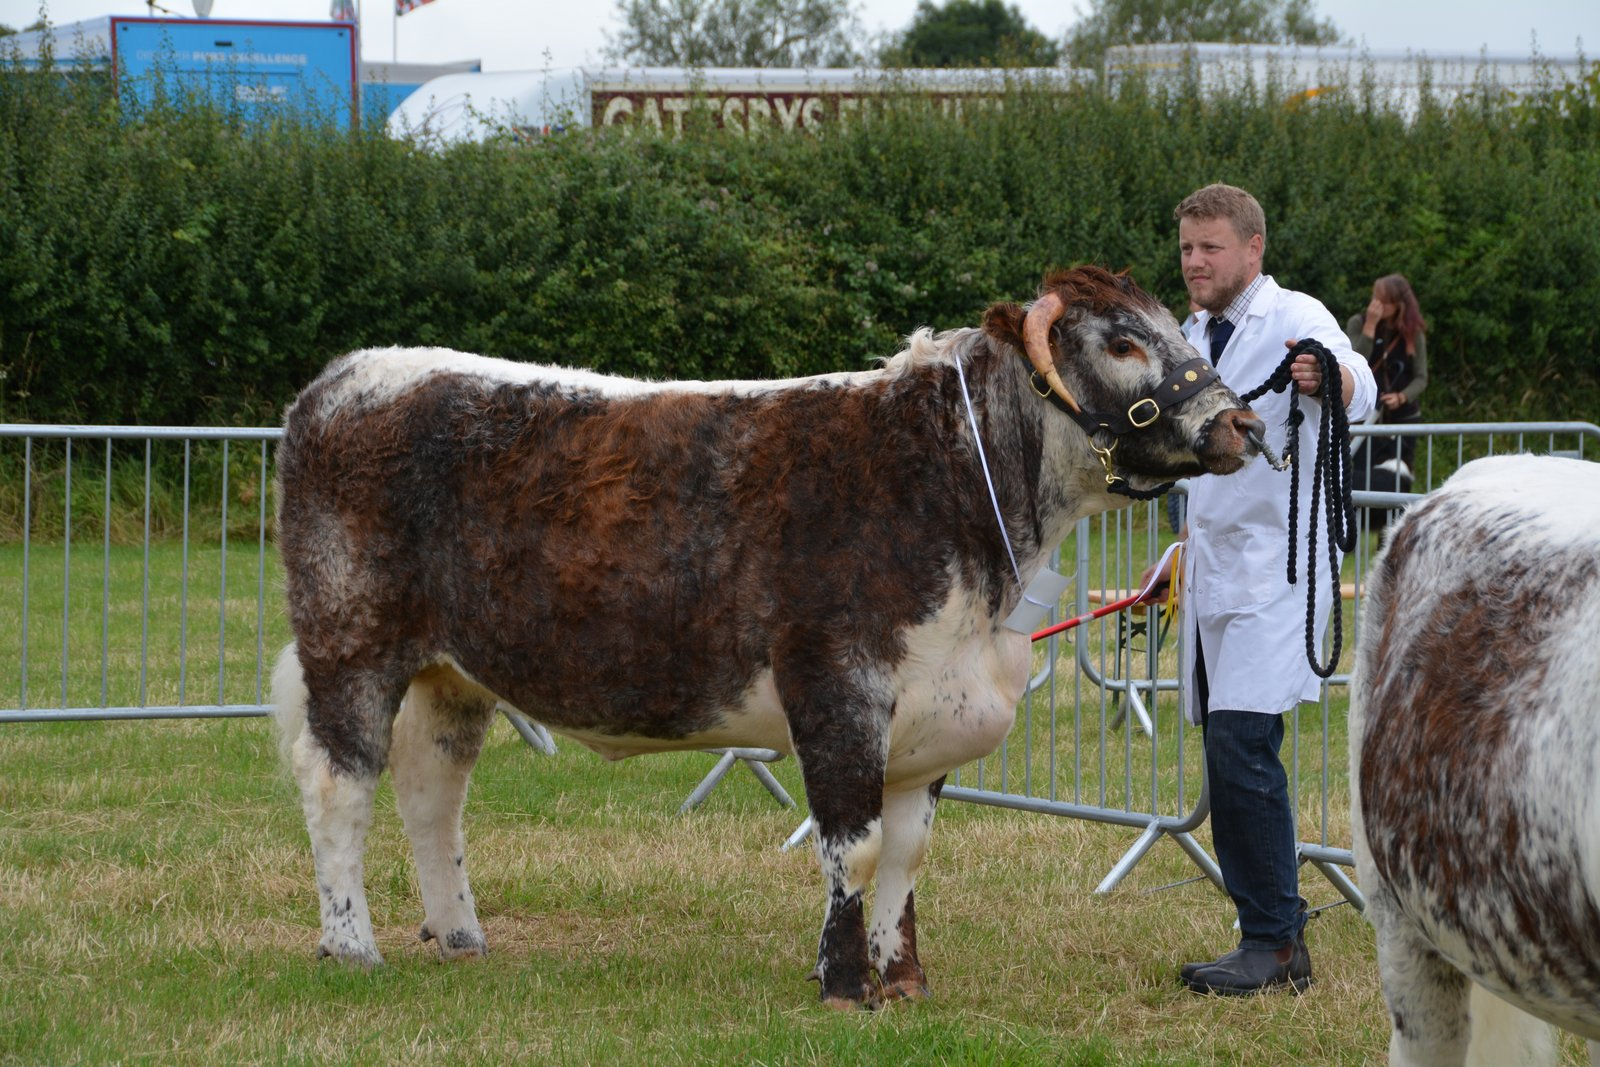 Blackbrook Bluebell Ashby Show 2019 1st Senior Heifer